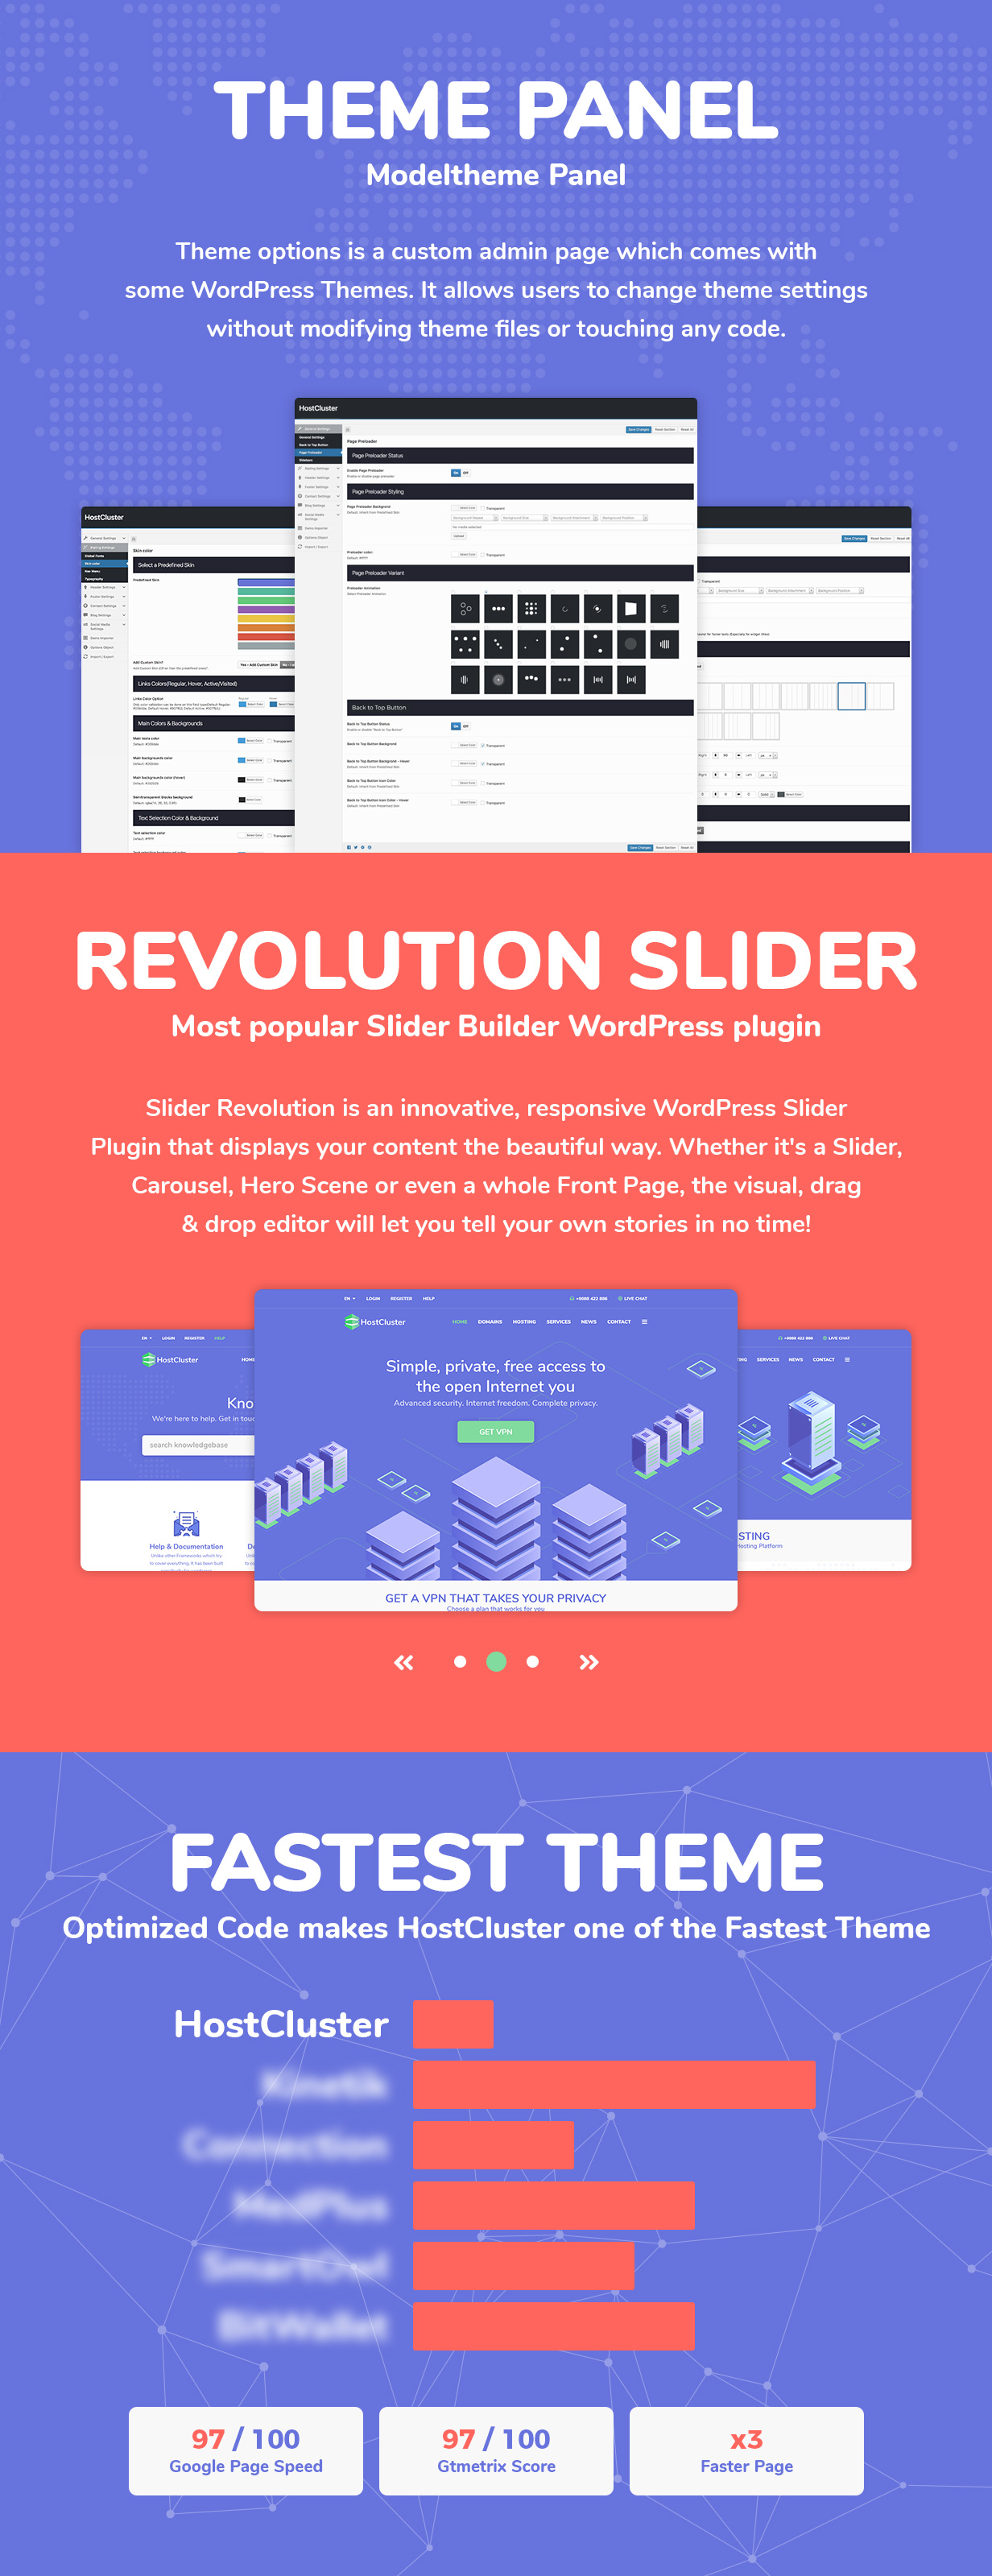 HostCluster - WHMCS Server & Hosting WordPress Theme - 4